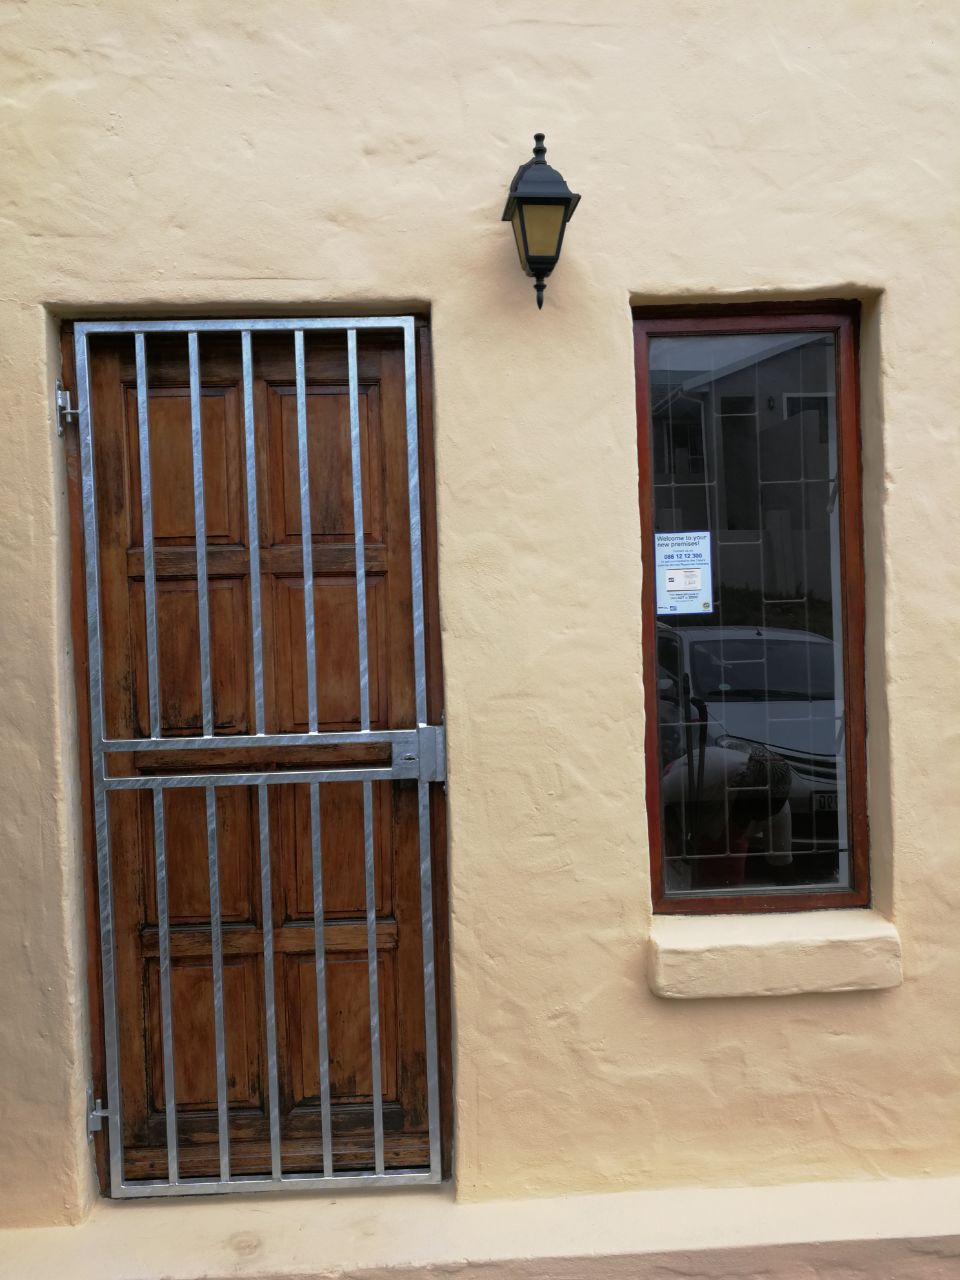 ONE BEDROOM FLAT WELCOME GLEN WITH OFF STREET PARKING R5 000,00 PM